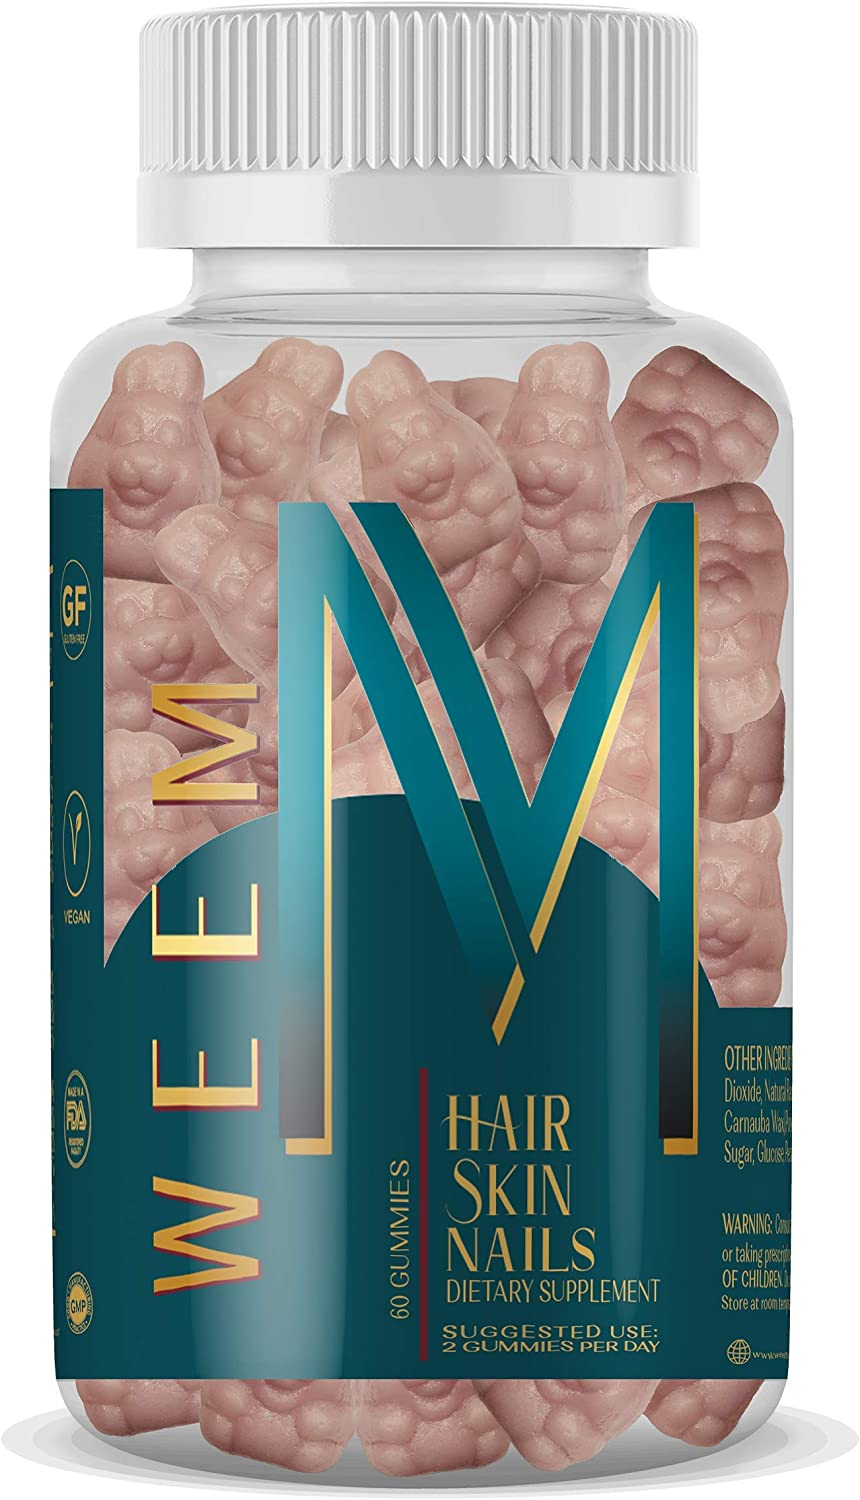 WEEM Hair Skin and Nails Gummies - Supports Healthy Hair - Vegan biotin Vitamins for Women & Men Supports Faster Hair Growth, Stronger Nails, Healthy Skin, Extra Strength 10,000mcg